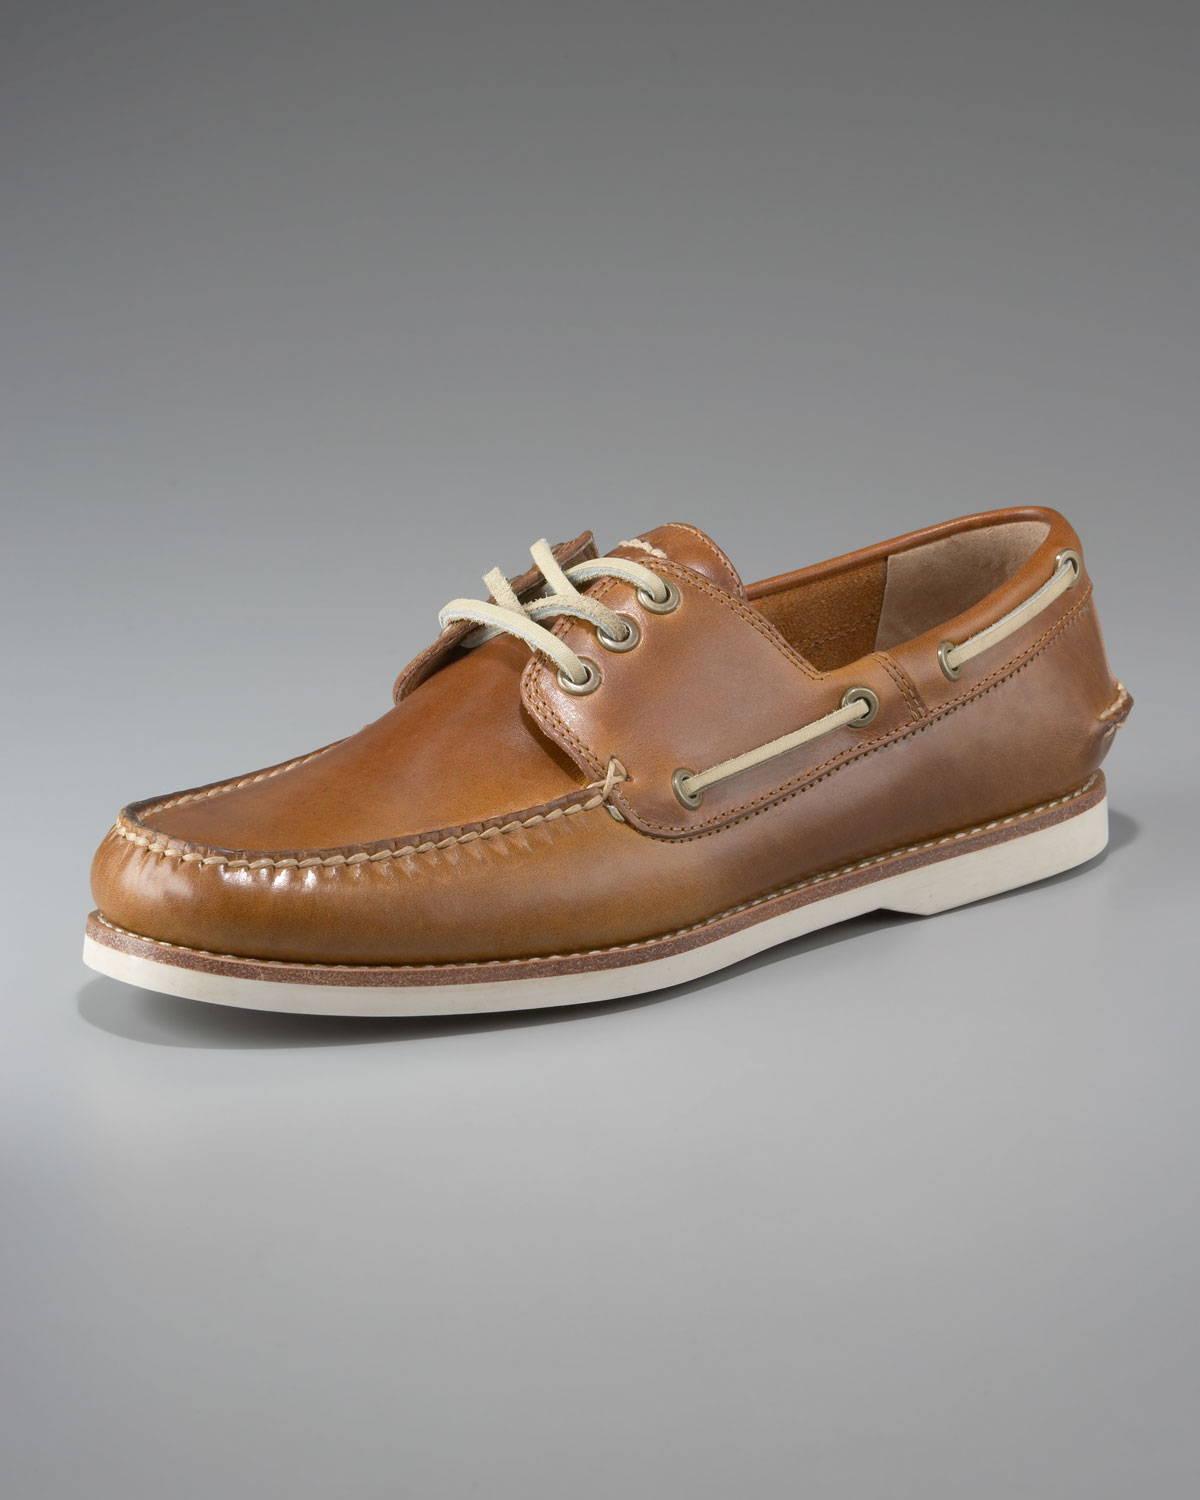 Mens Sully Boat Shoes Frye XeOqkd